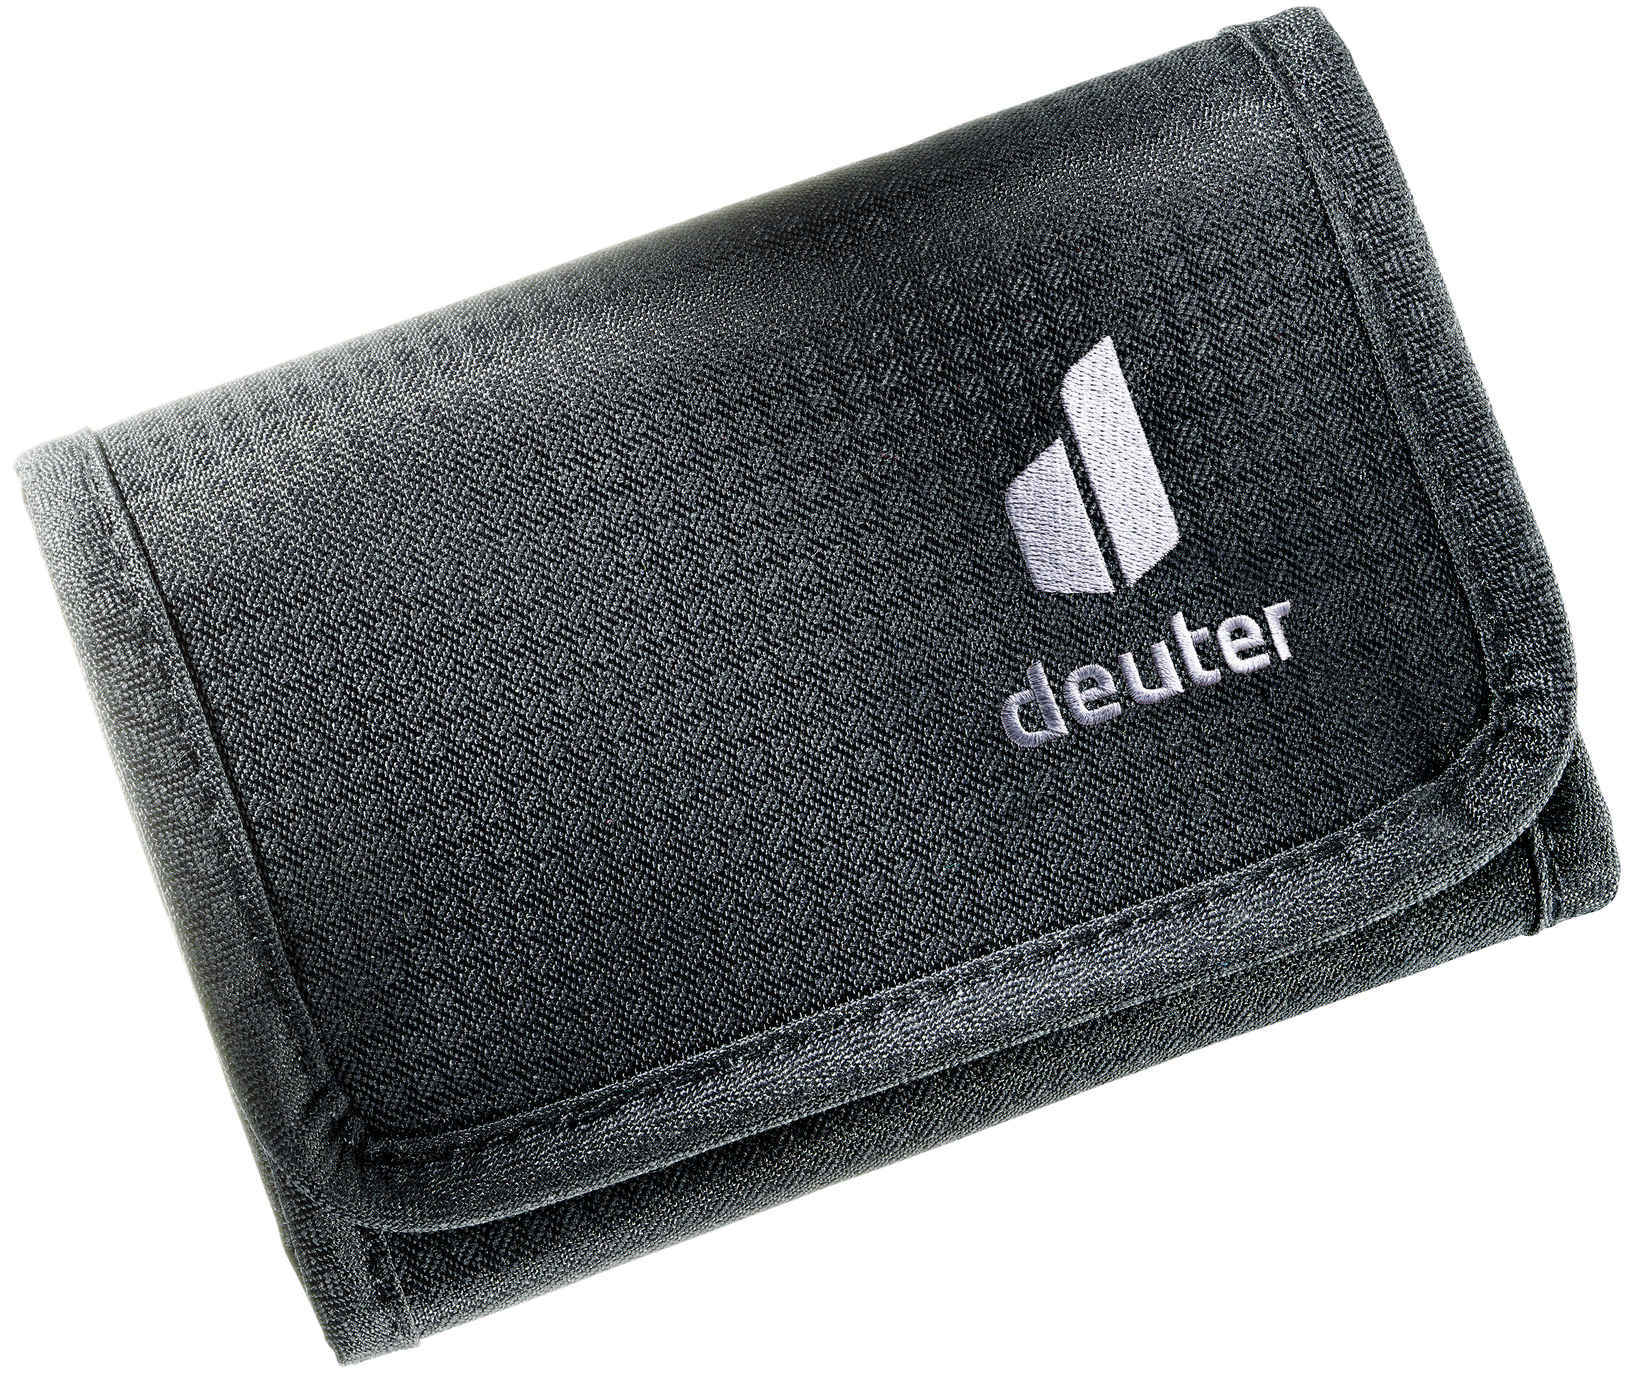 Новинки Кошелек Deuter Travel Wallet (2021) 3922621-7000-TravelWallet-16-d0.jpg